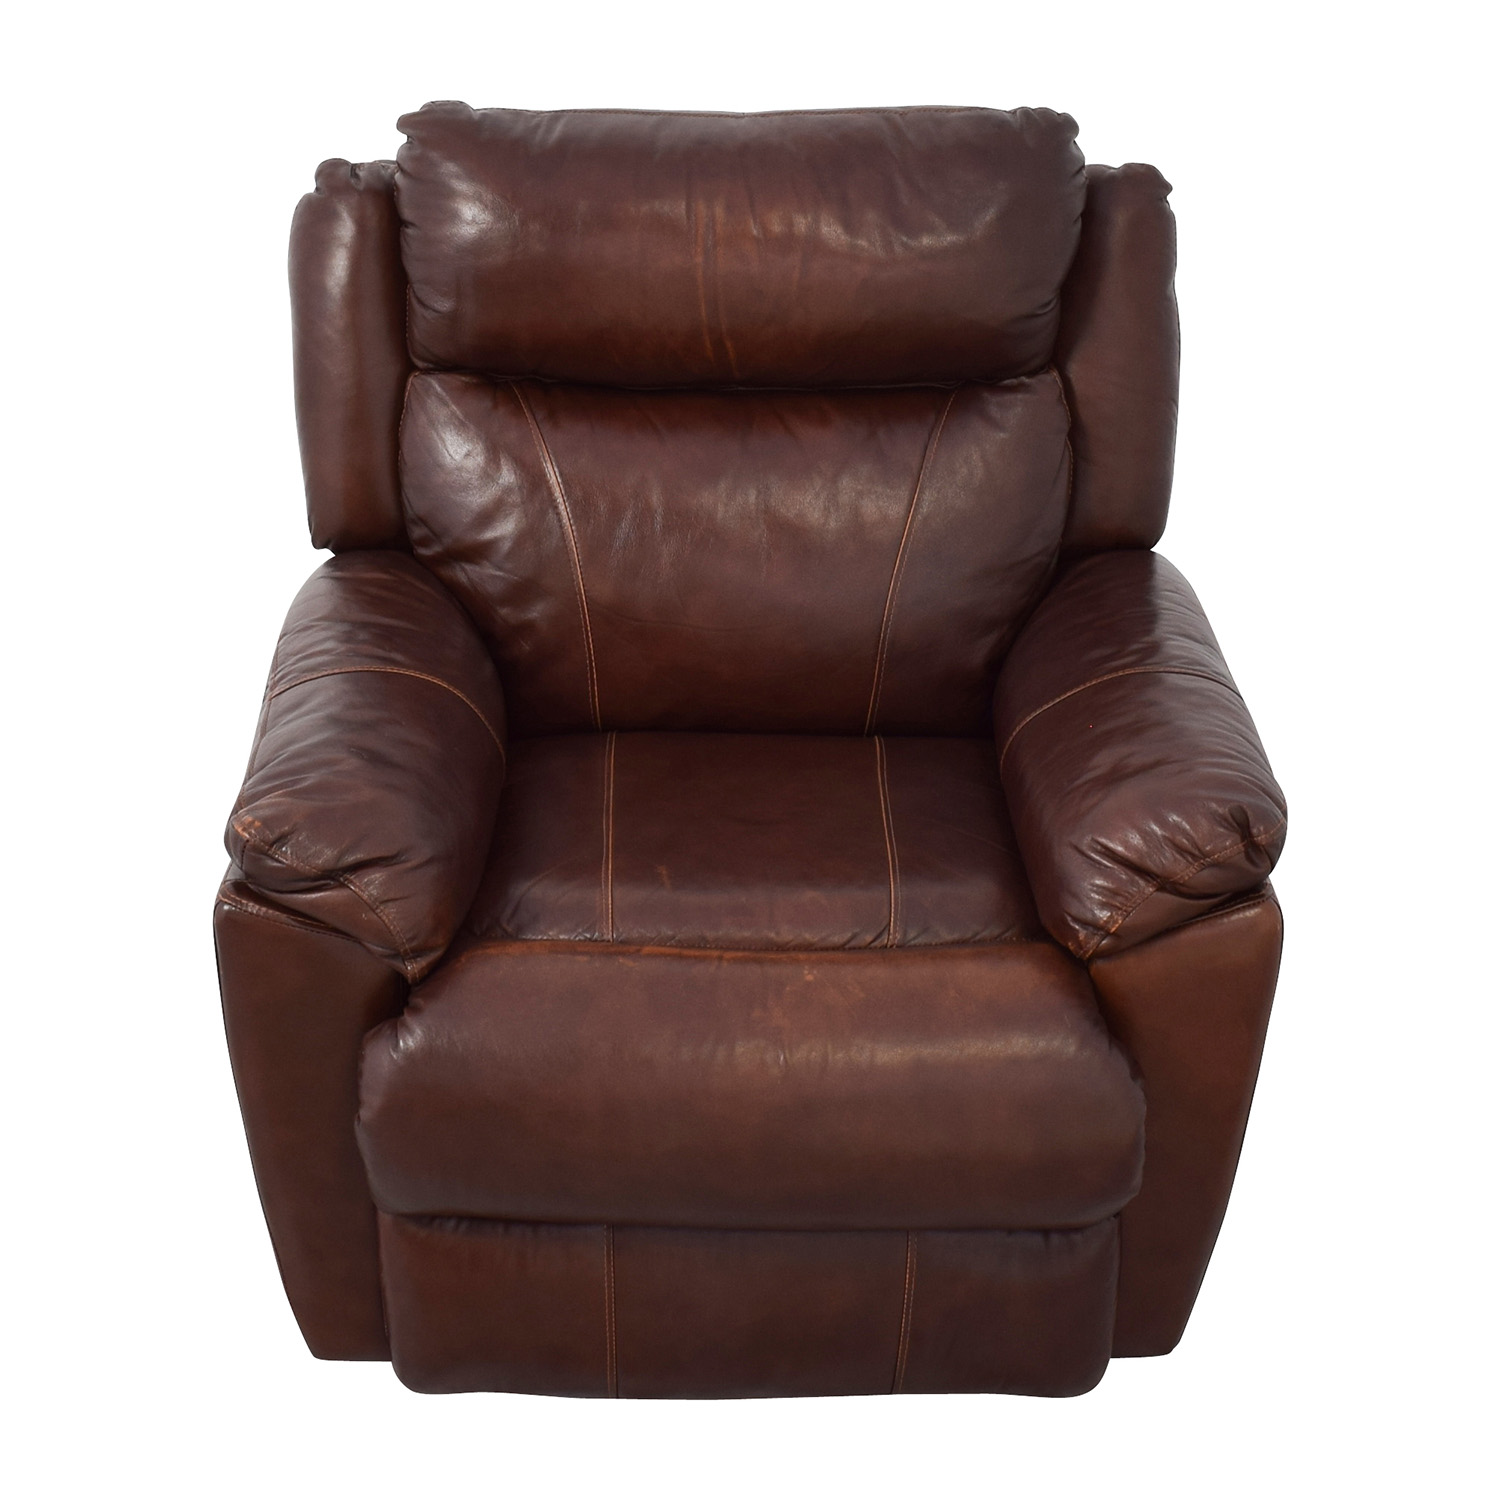 ... Macyu0027s Macyu0027s Brown Leather Power Recliner ...  sc 1 st  Furnishare & 61% OFF - Macyu0027s Macyu0027s Brown Leather Power Recliner / Chairs islam-shia.org